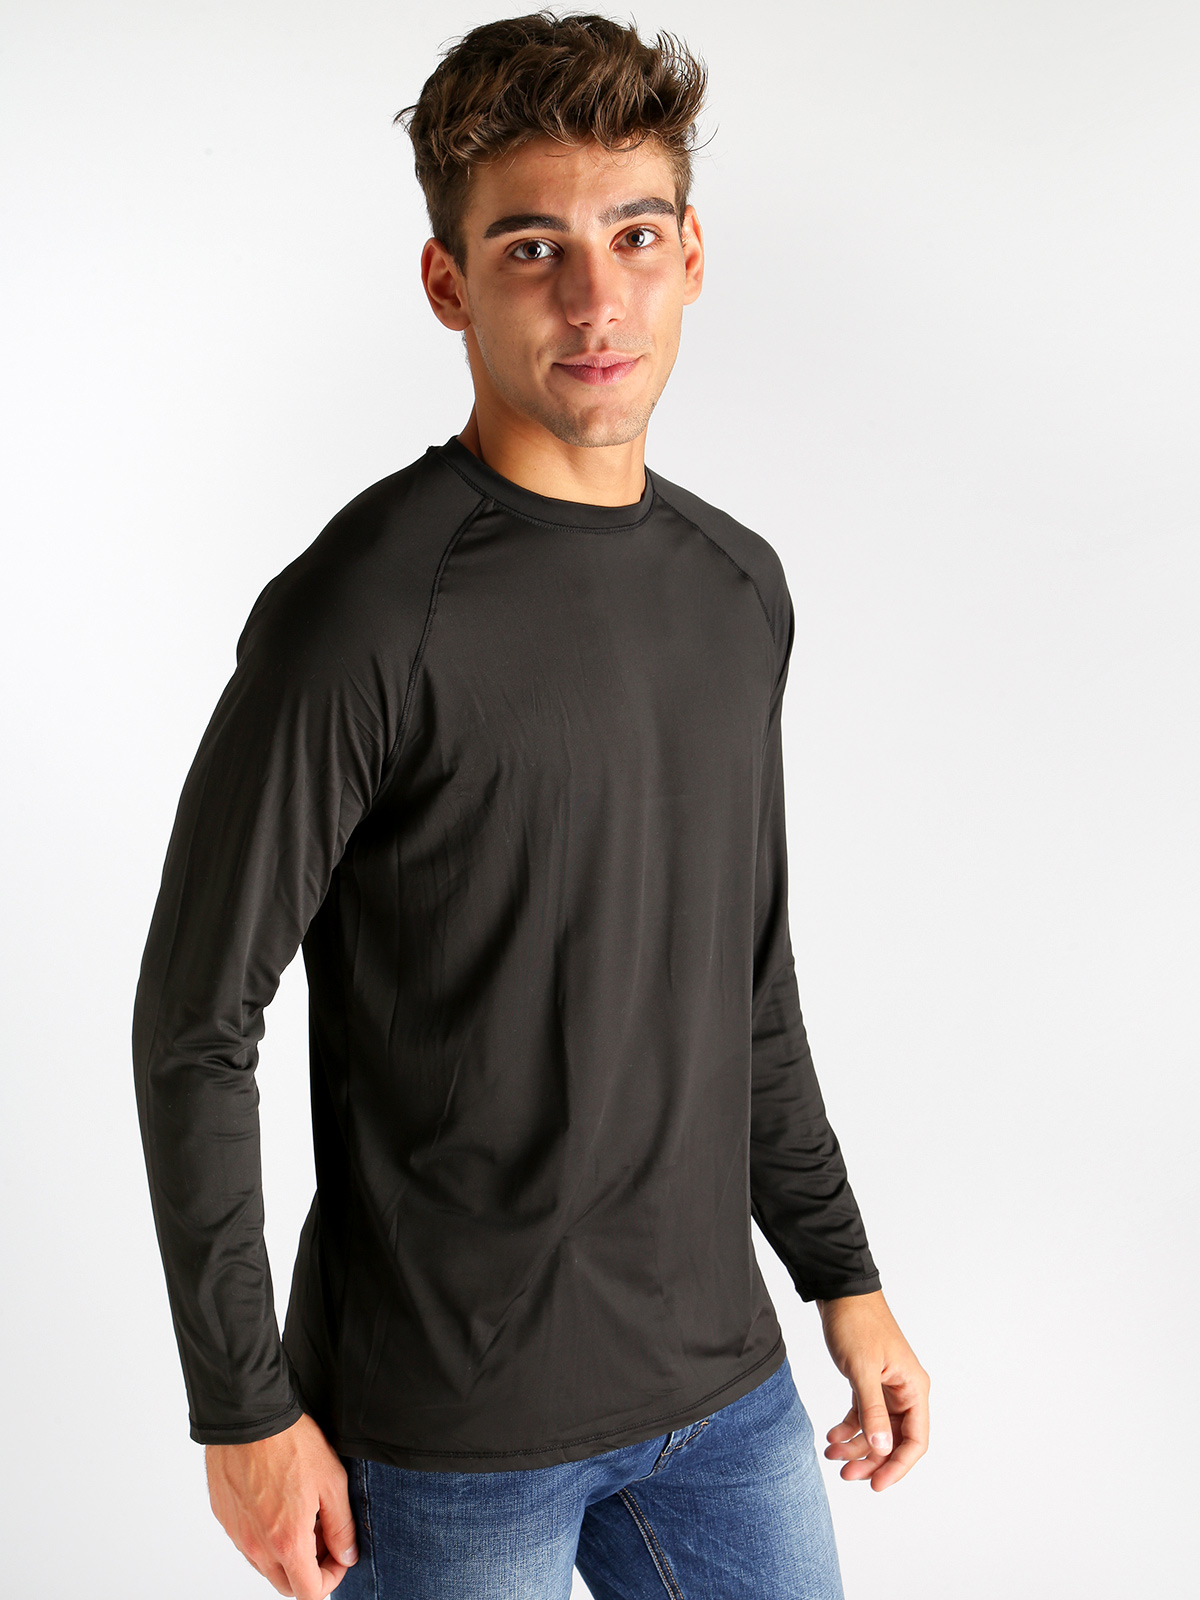 Technical Fabric Long Sleeve T Shirt